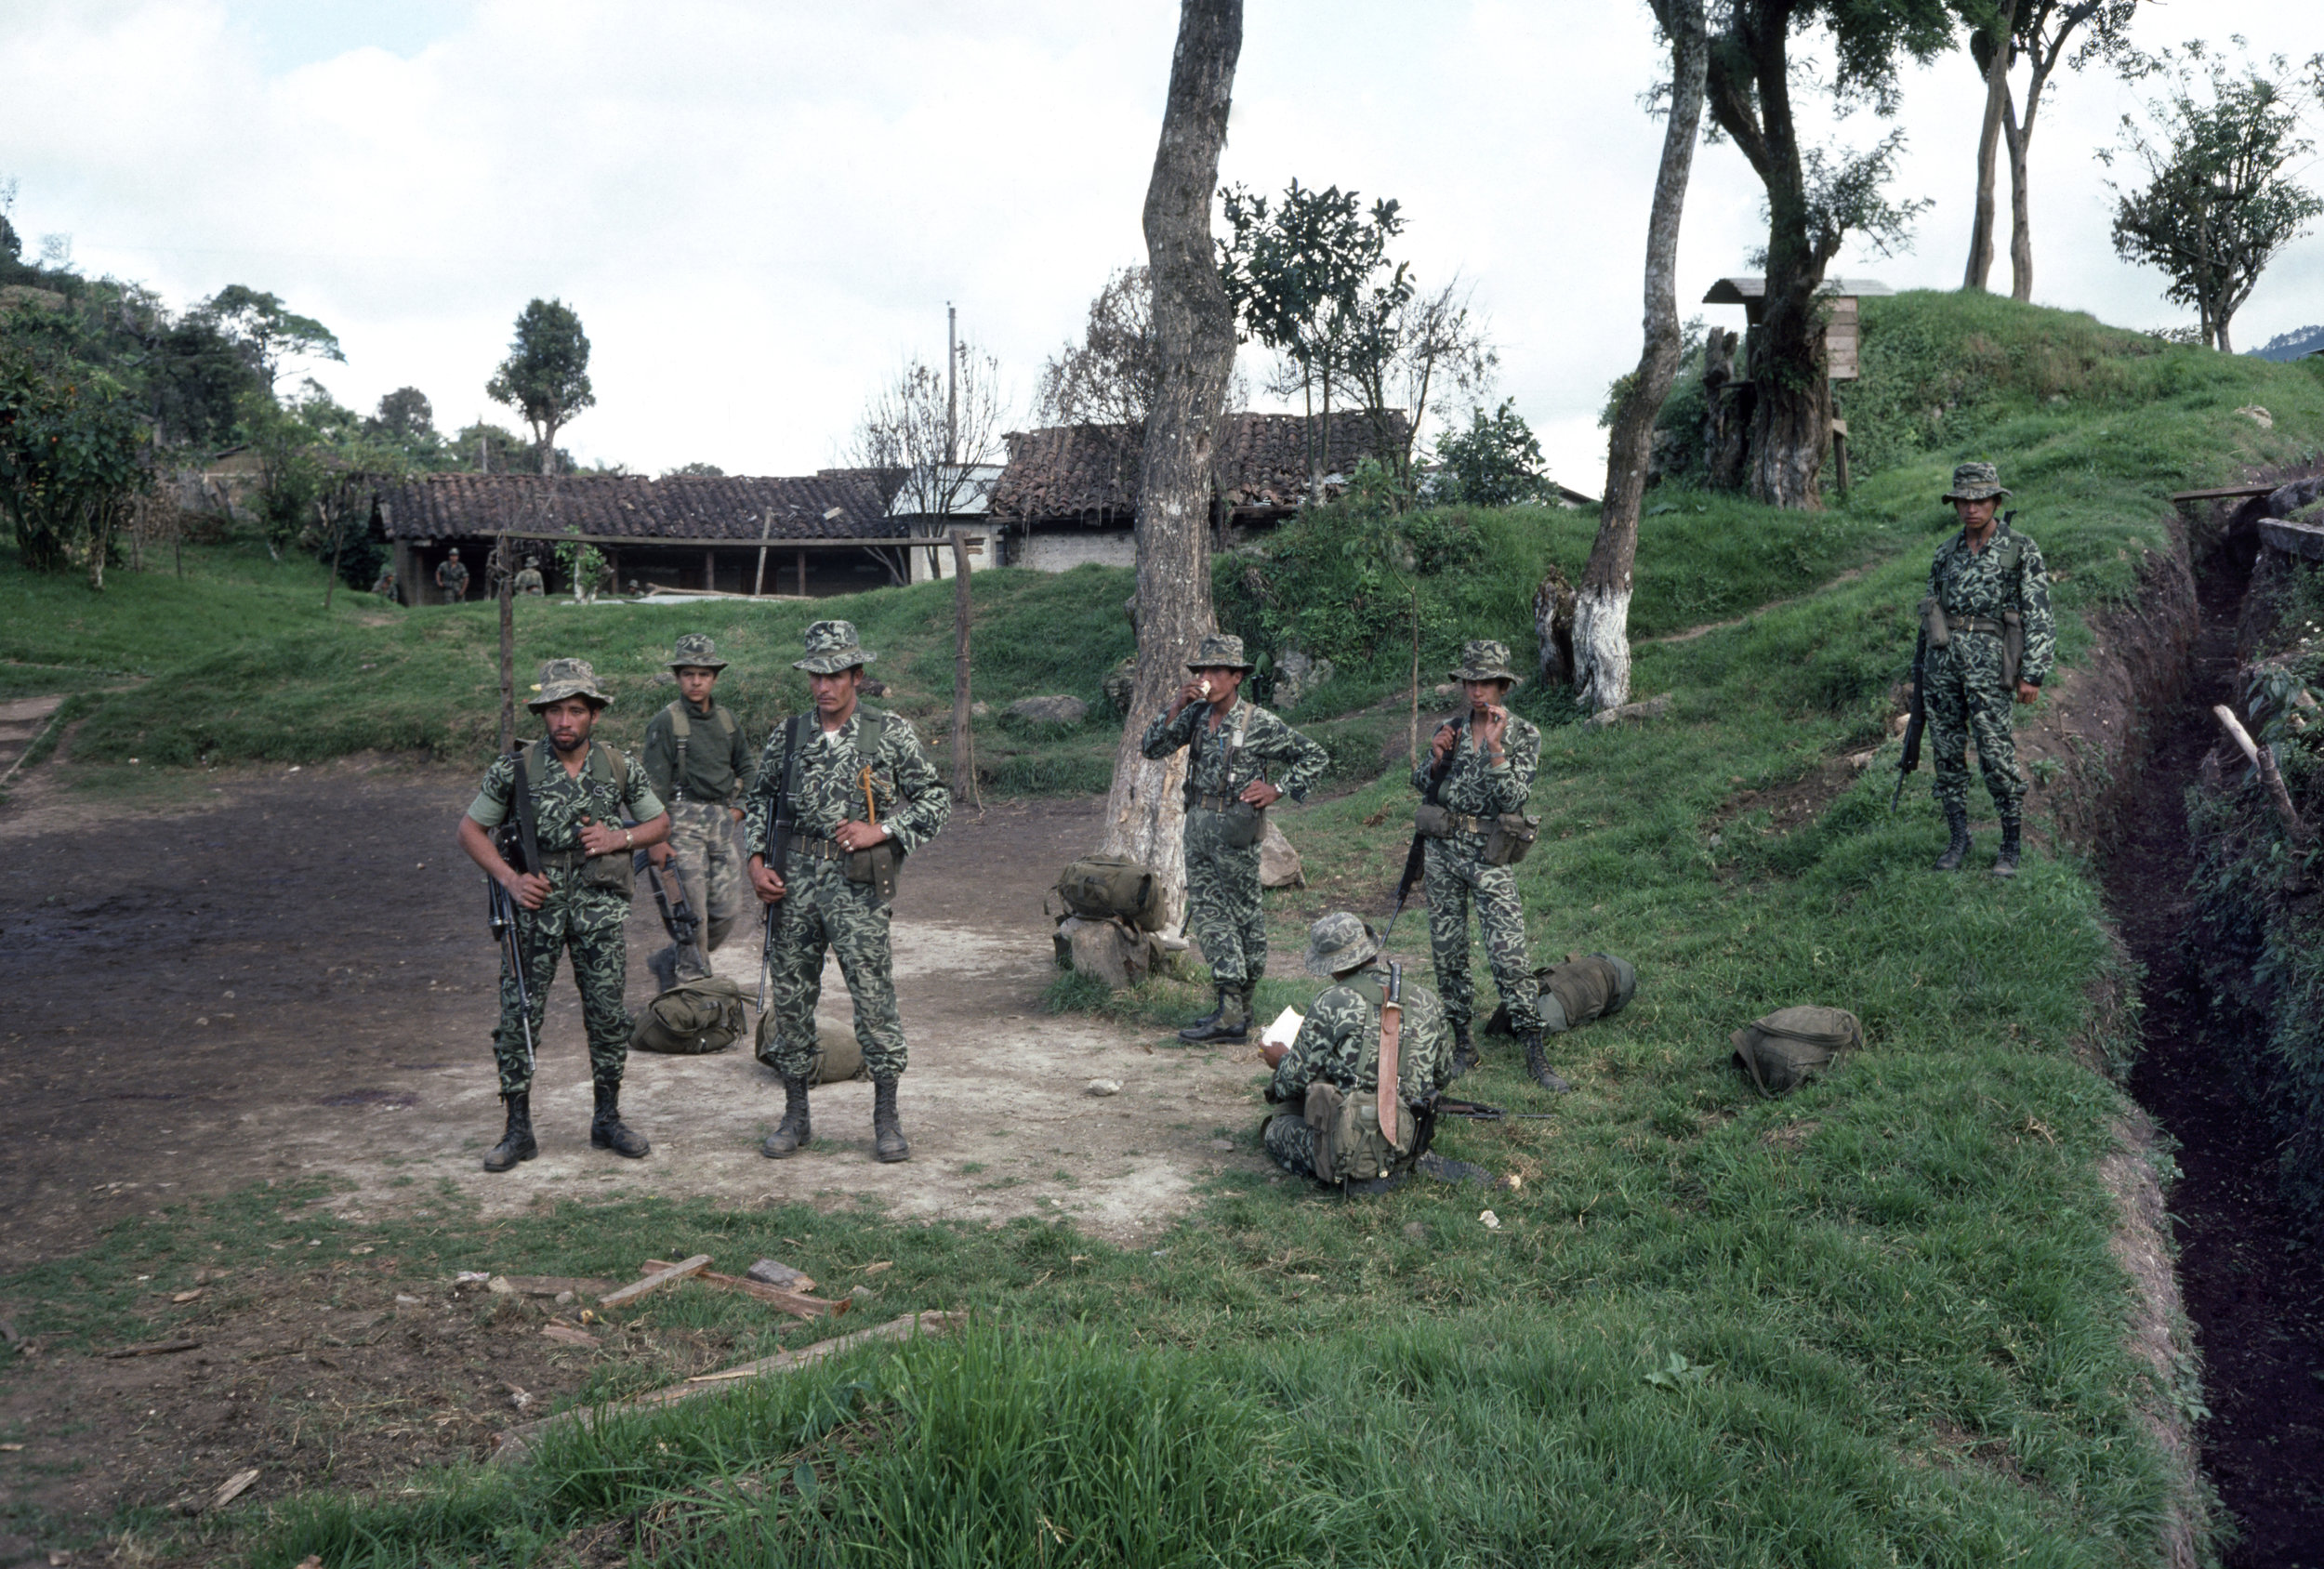 Guatemalan army soldiers rest before moving out in search of insurgents that attacked the army base one day earlier in San Juan Cotzal, Guatemala, January 20, 1982. On January 19, 1982, the Guerrilla Army of the Poor, EGP, attacked the army garrison in San Juan Cotzal with a reported 300 insurgents killing 37 government soldiers.